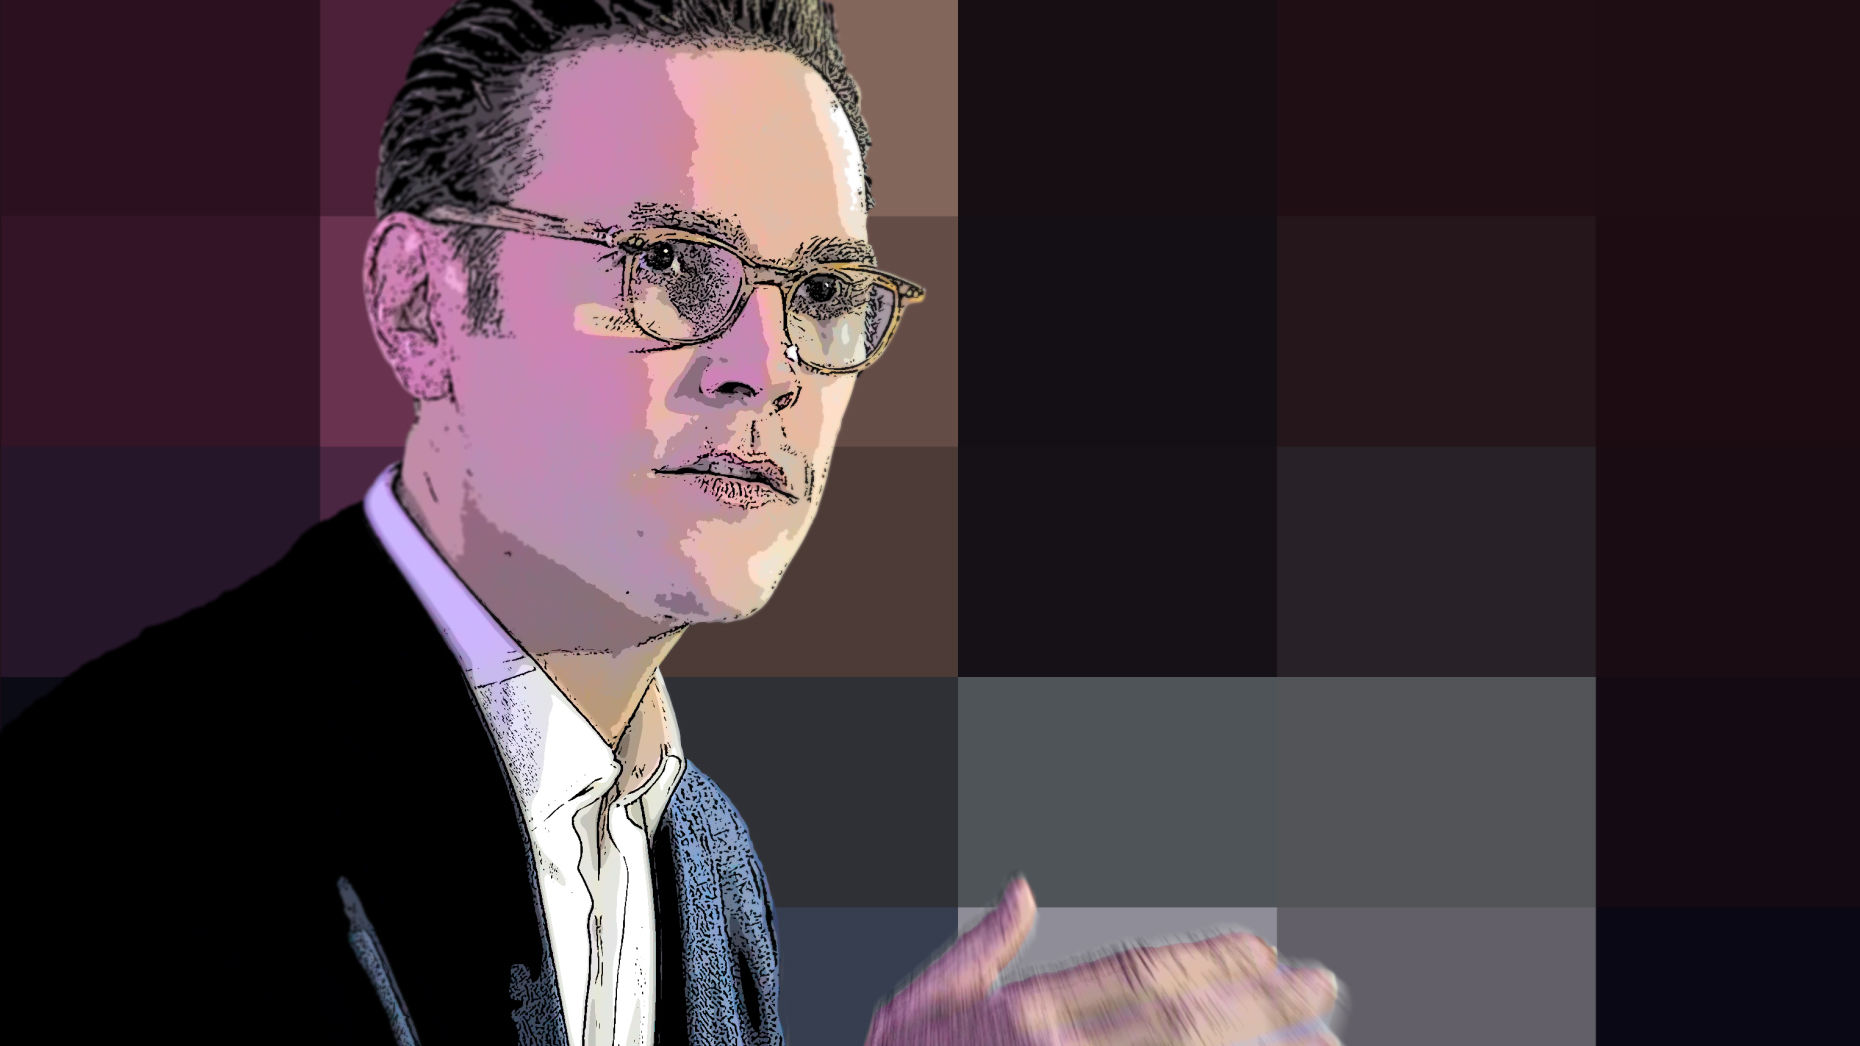 James Murdoch. Art by Matt Vascellaro.